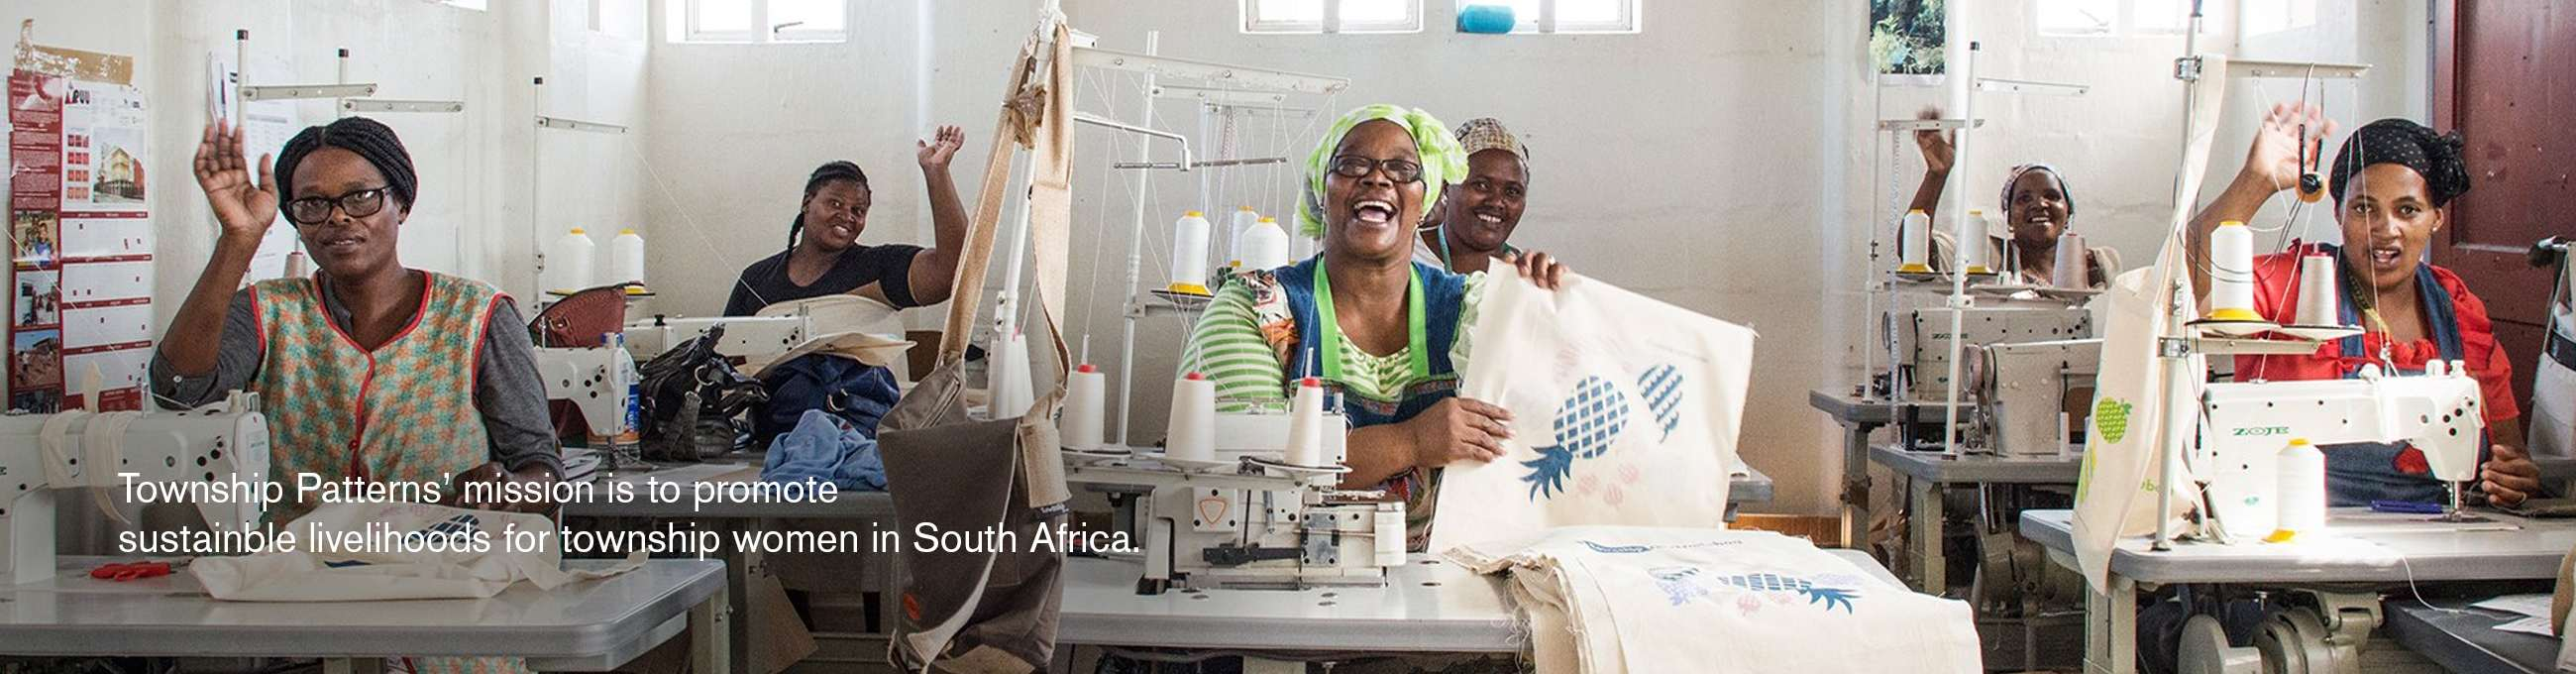 Township Patterns is a mission-led social enterprises promoting sustainable livelihoods for township women.